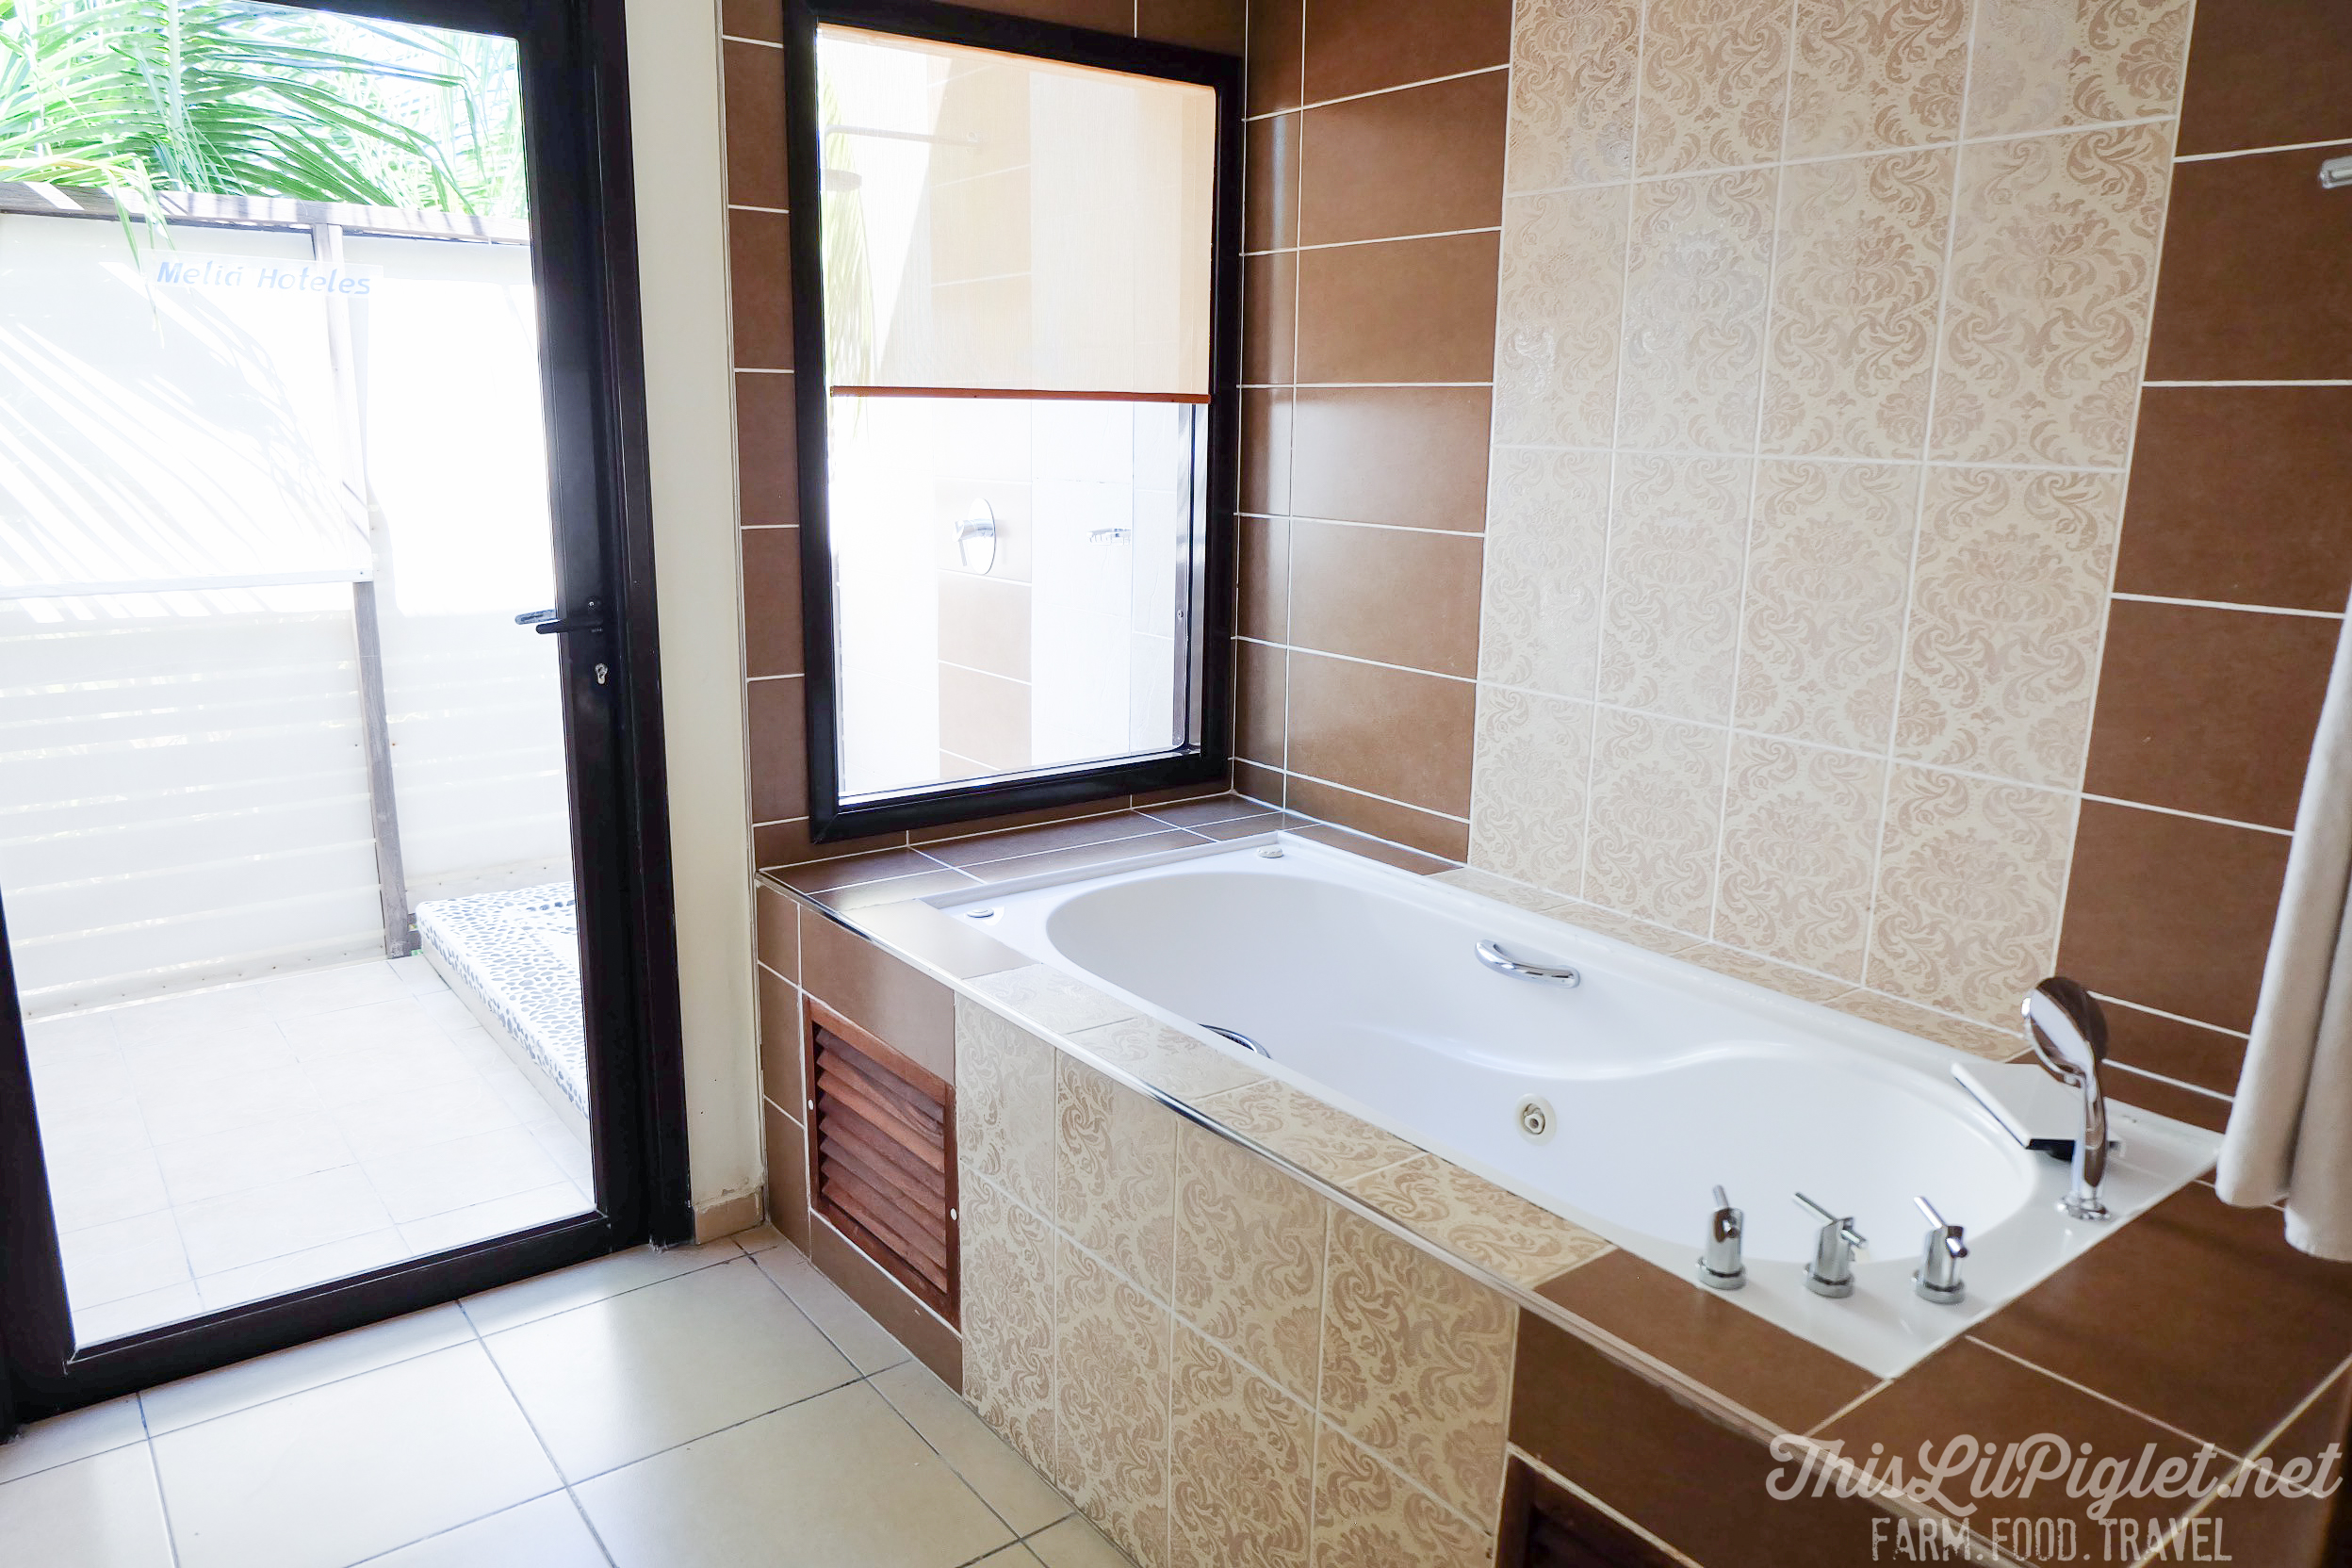 Cuba Couples Travel: Melia Buenavista Hotel Junior Suite Bath // thislilpiglet.net